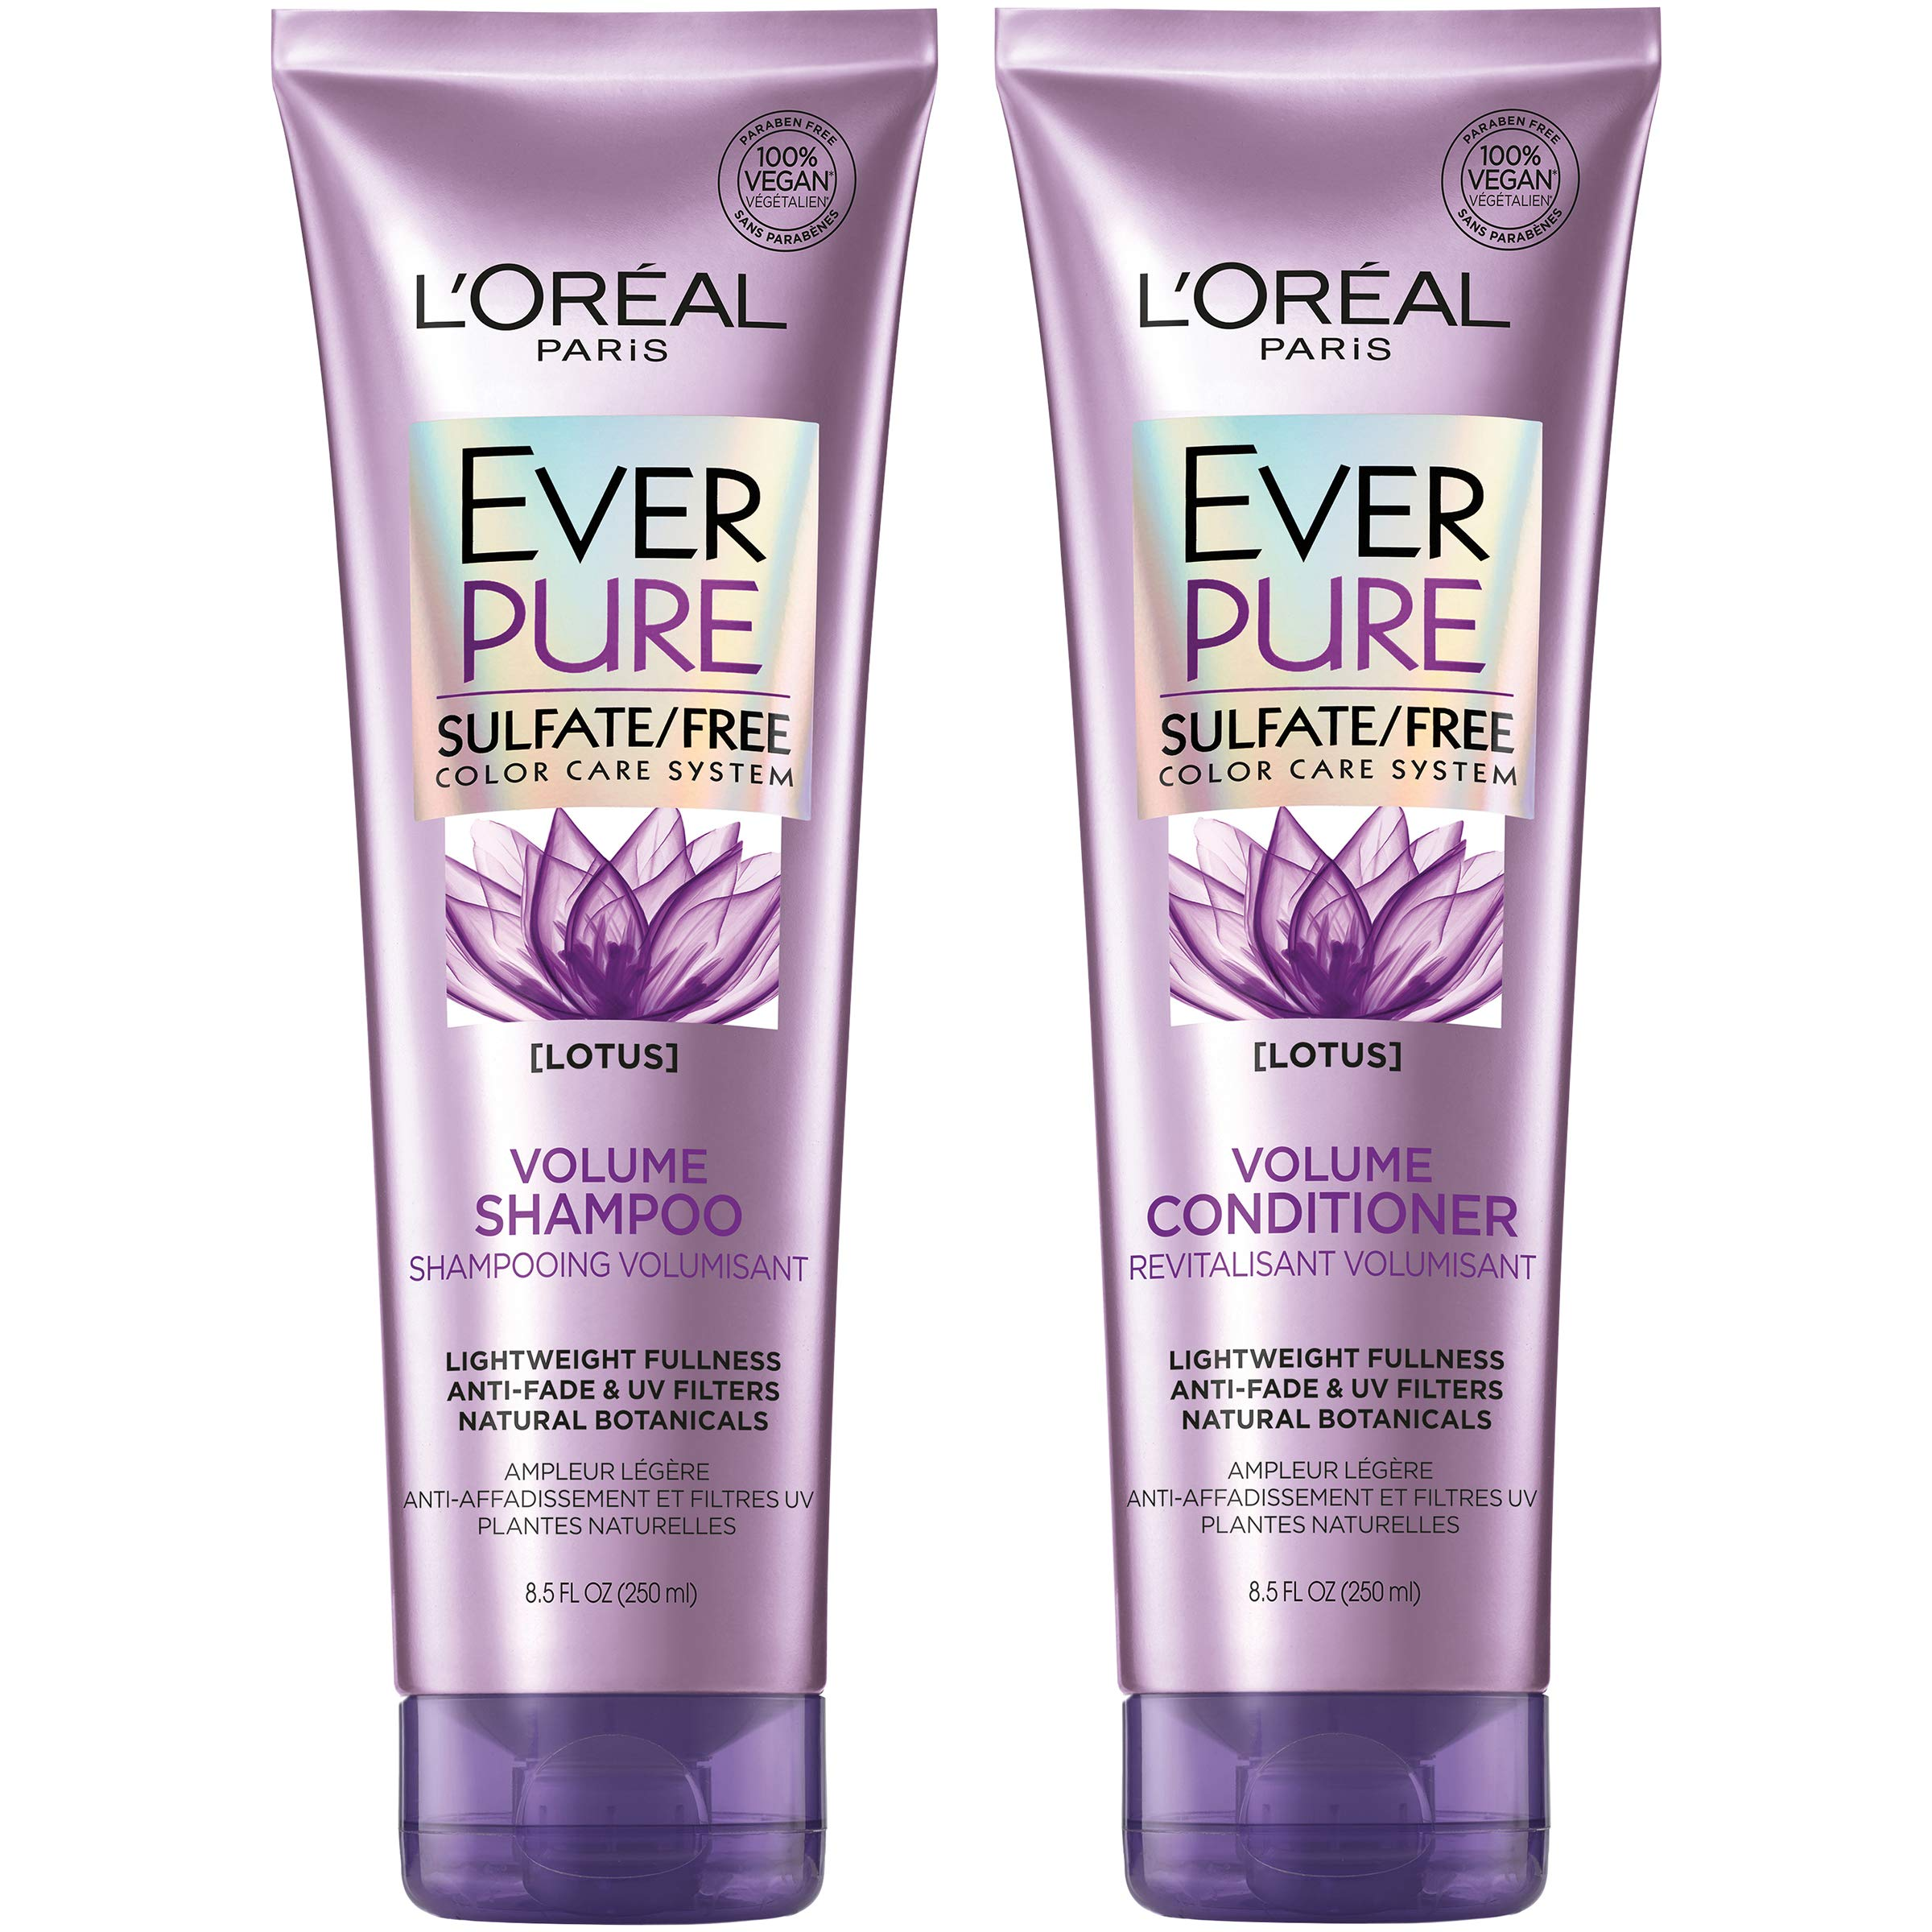 L'Oreal Paris Hair Care EverPure Volume Sulfate Free Shampoo & Conditioner Kit for Color-Treated Hair, Volume + Shine for Fine, Flat Hair, (8.5 fl. oz. each) by L'Oréal Paris